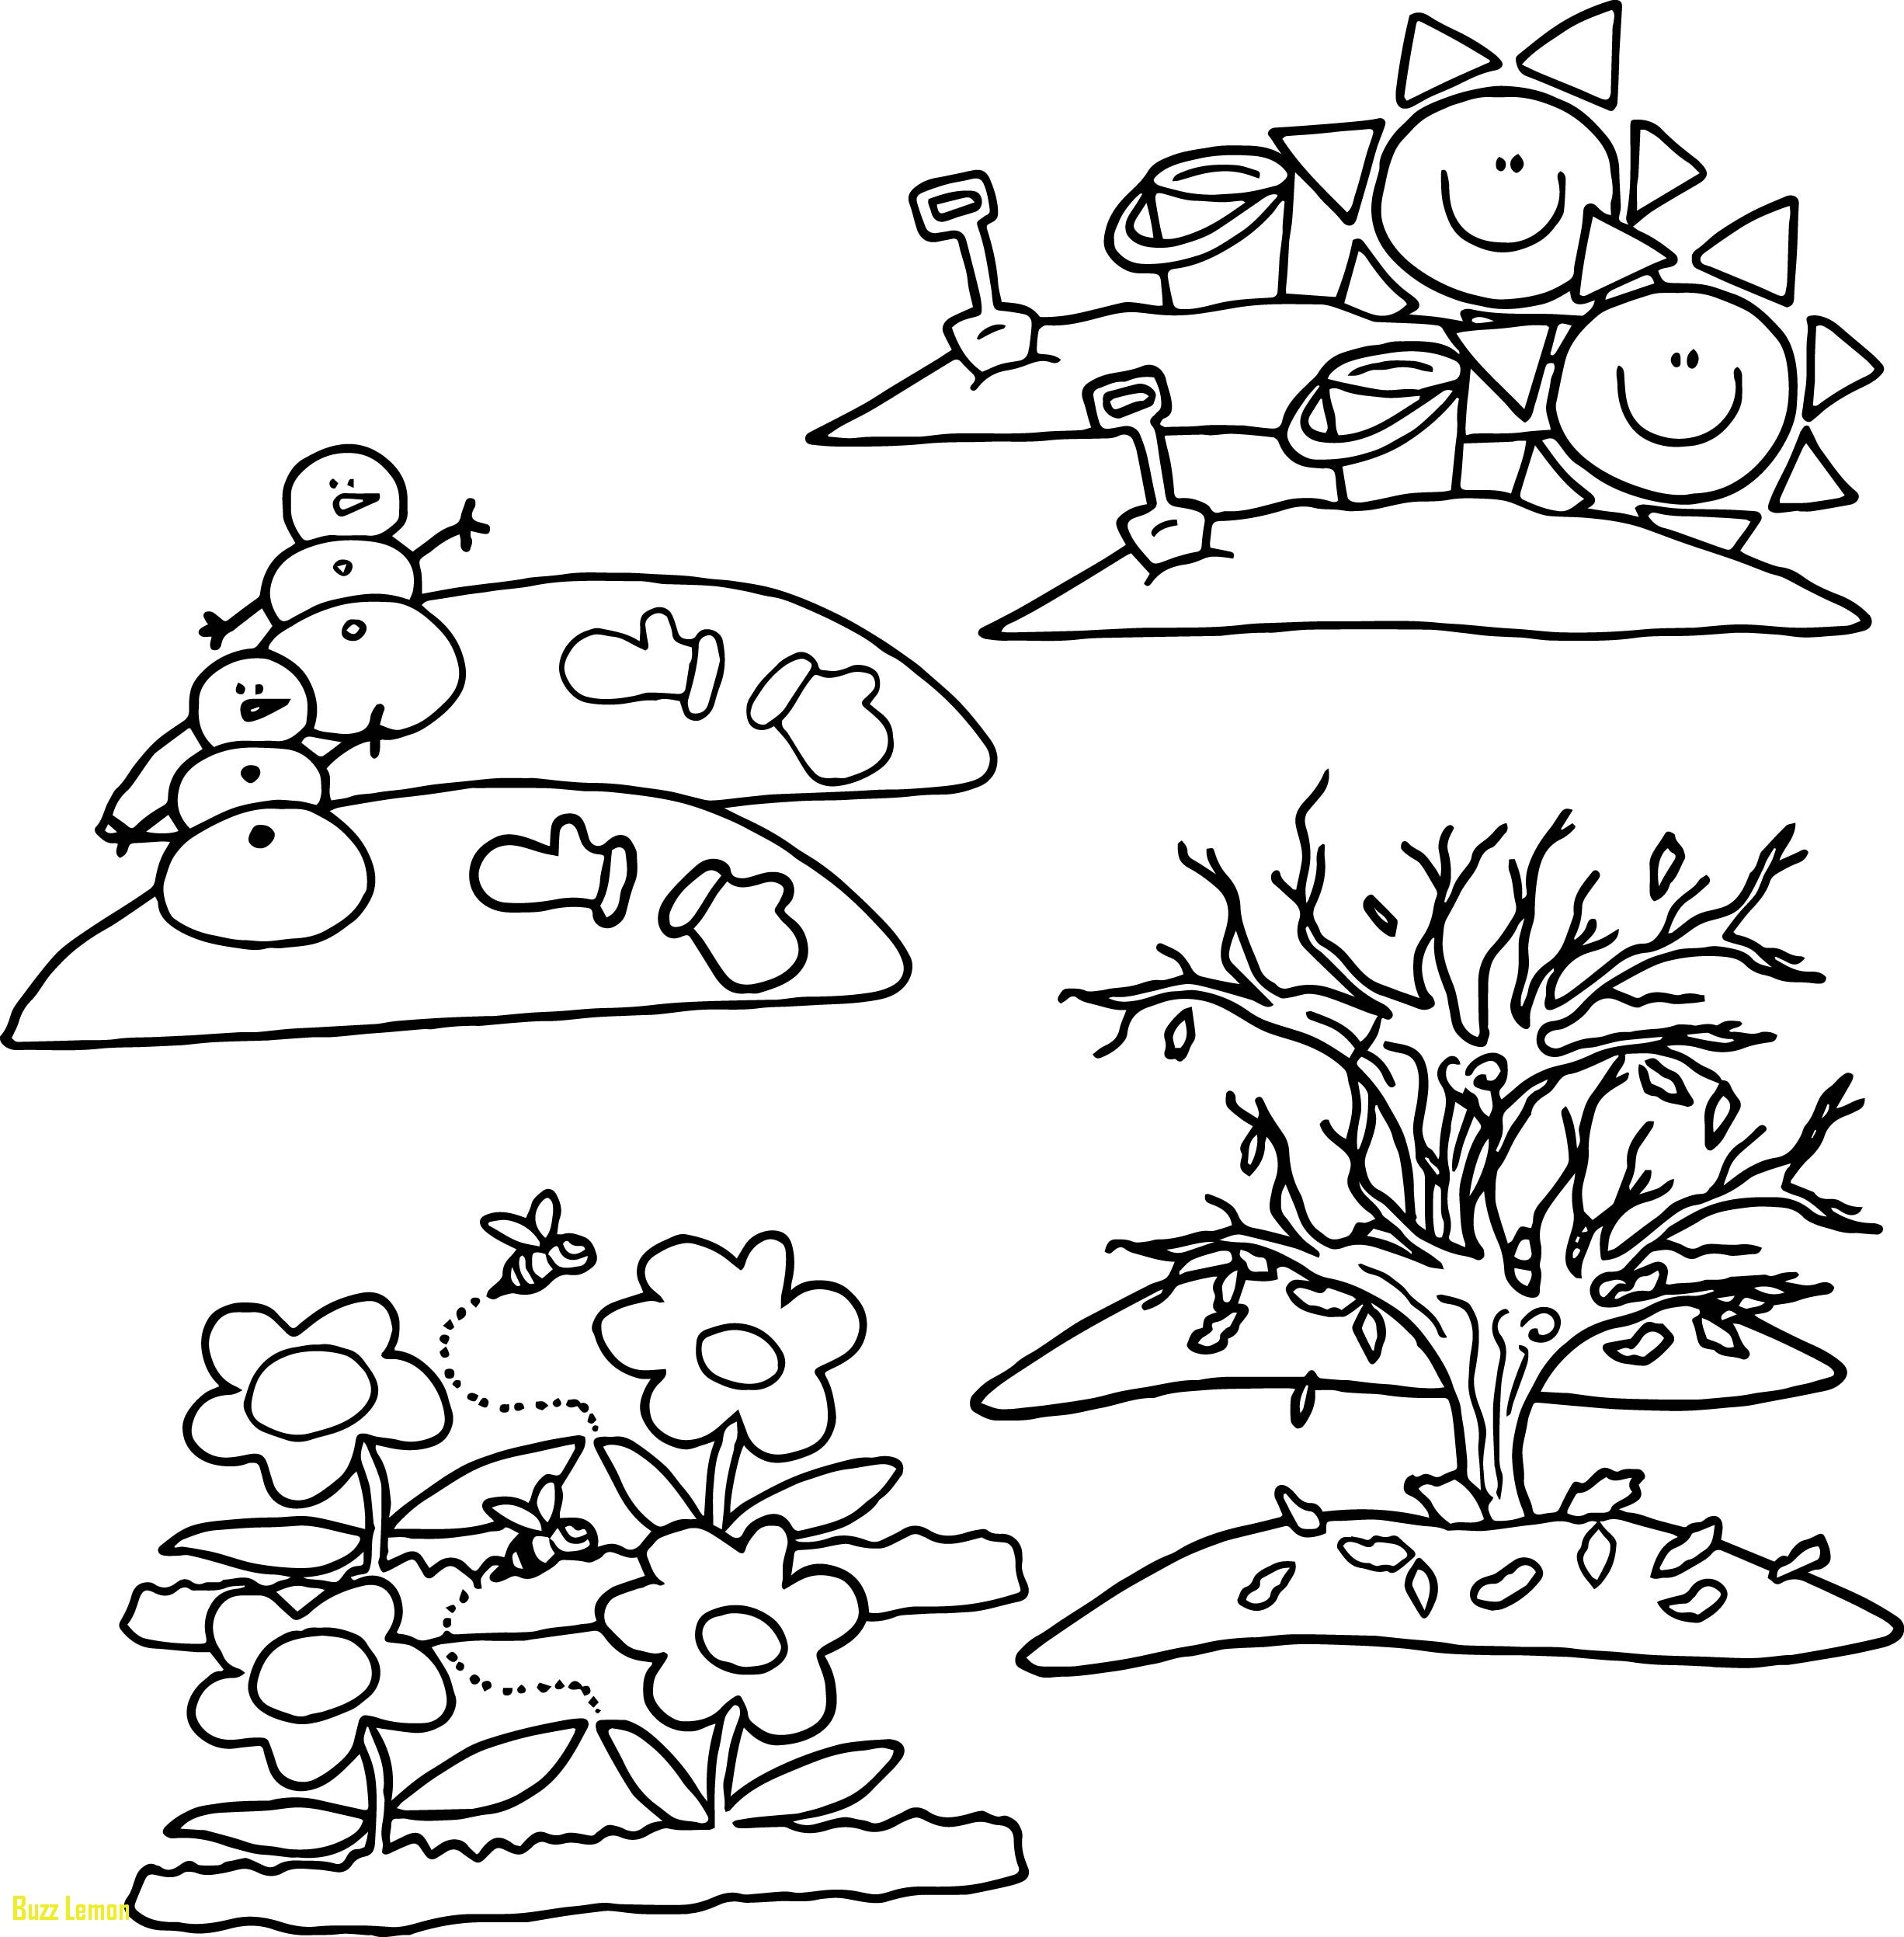 seasons coloring pages seasons coloring pages coloring pages to download and print pages seasons coloring